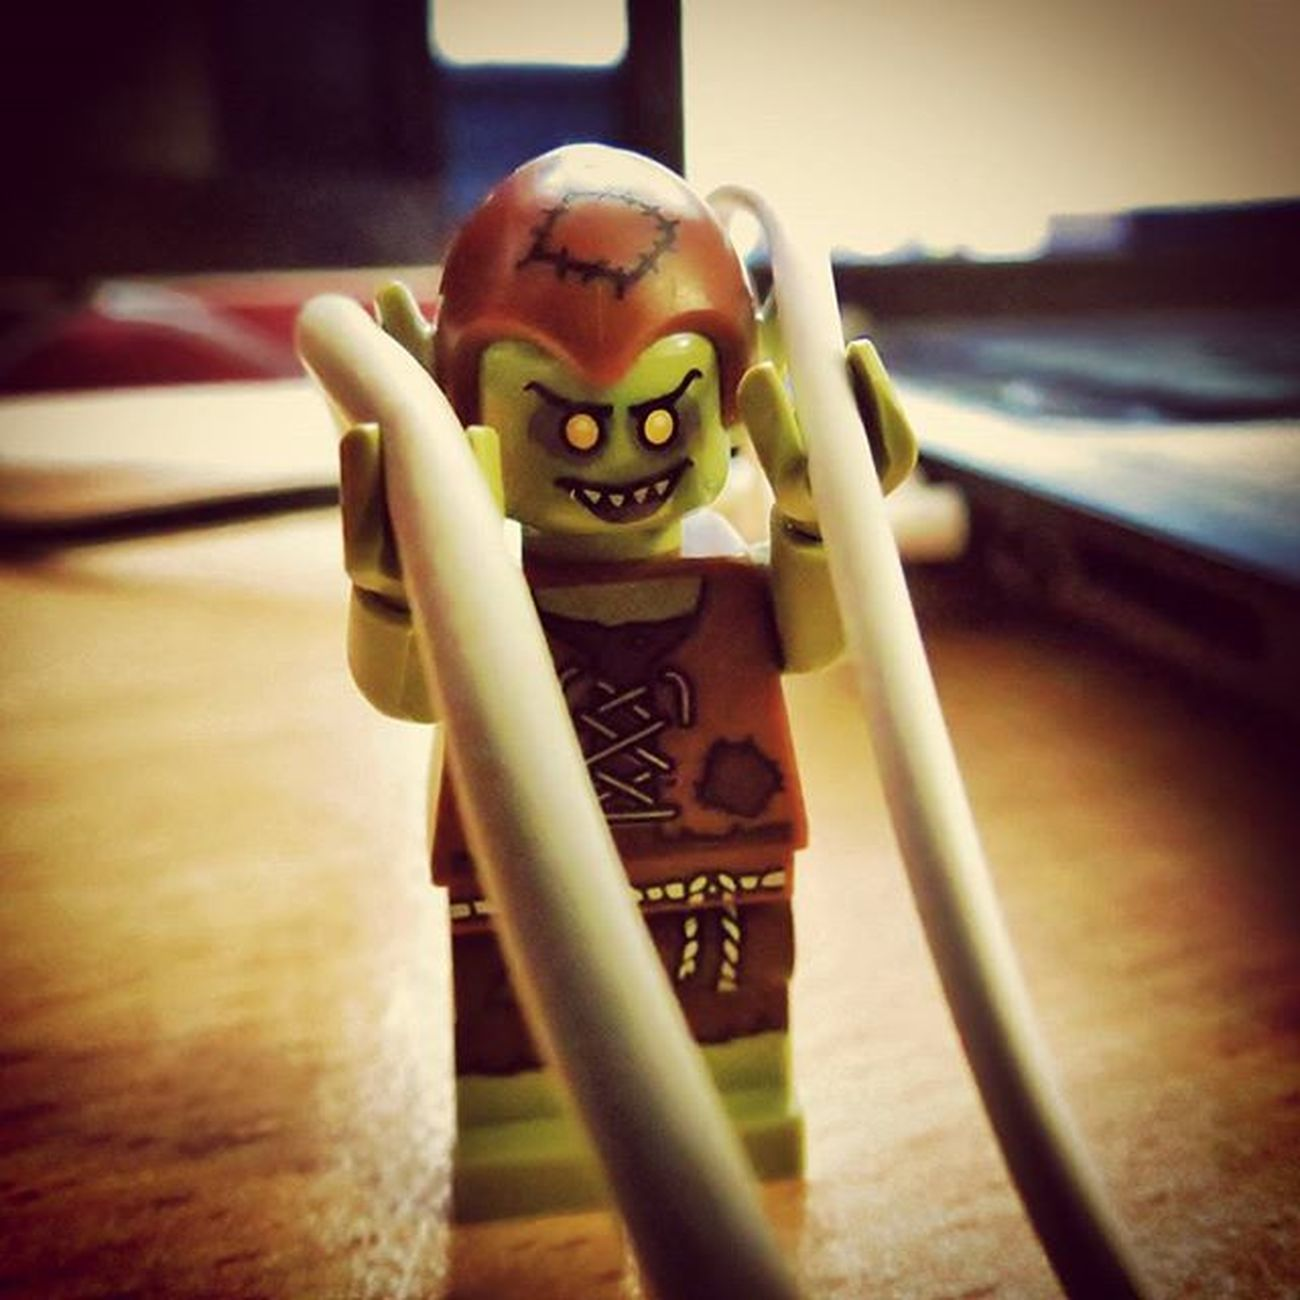 """I am the keeper of the cables! Mwahahaha..."" He's also responsible for tying the ridiculously intricate knots in headphone cords when they're left in pockets. Legophotography LEGO Minfigures Goblin Brickify Womenintoyphotography"